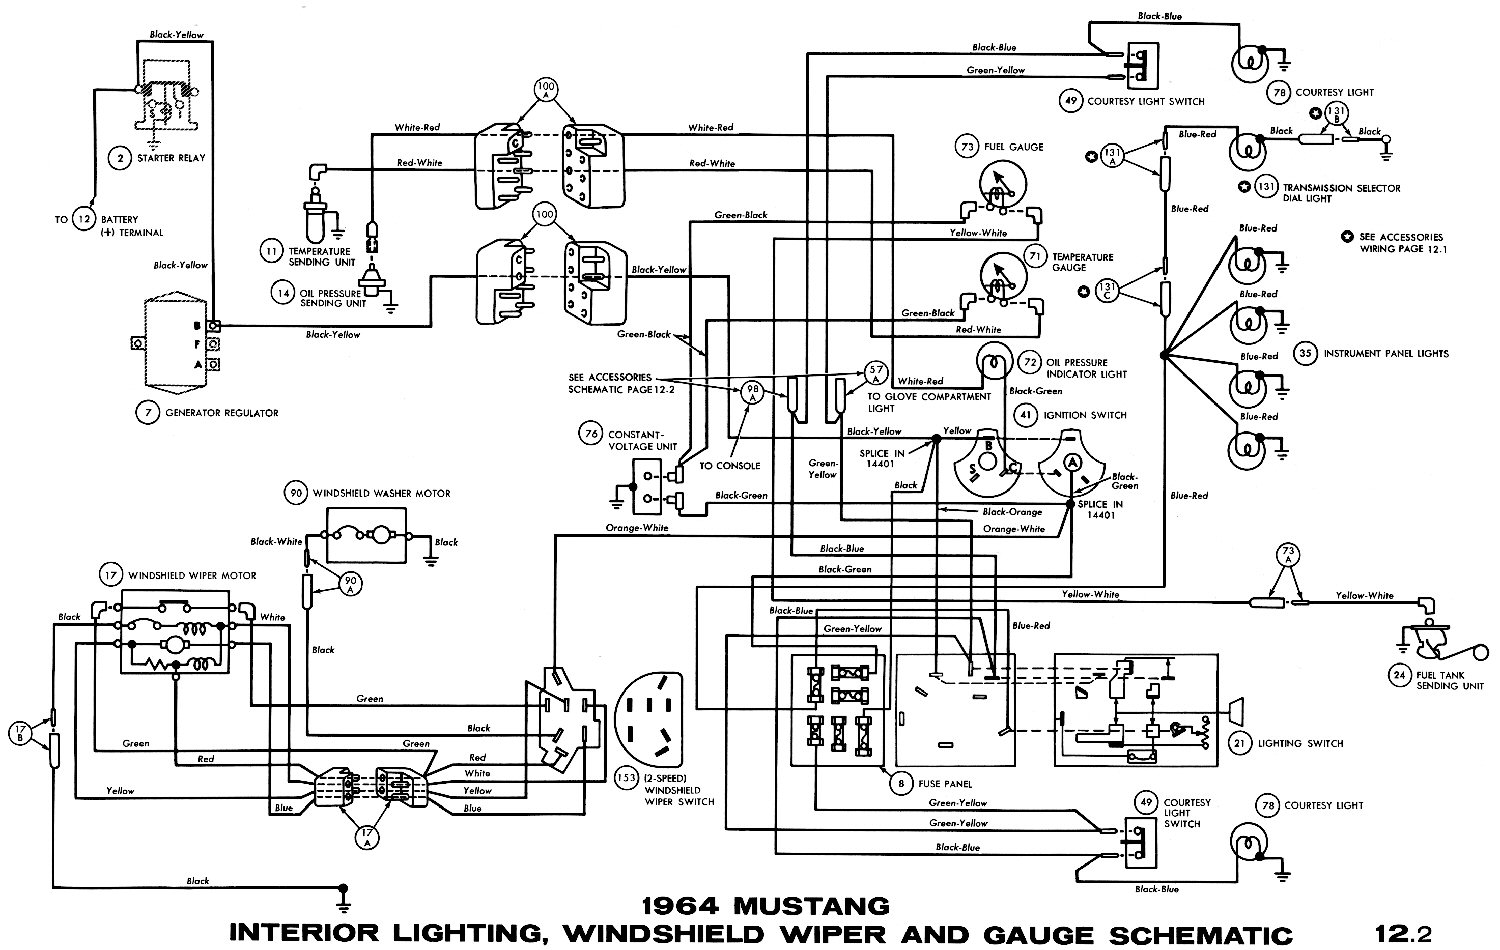 1964k 1964 mustang wiring diagrams average joe restoration 1970 ford mustang wiring diagram at n-0.co